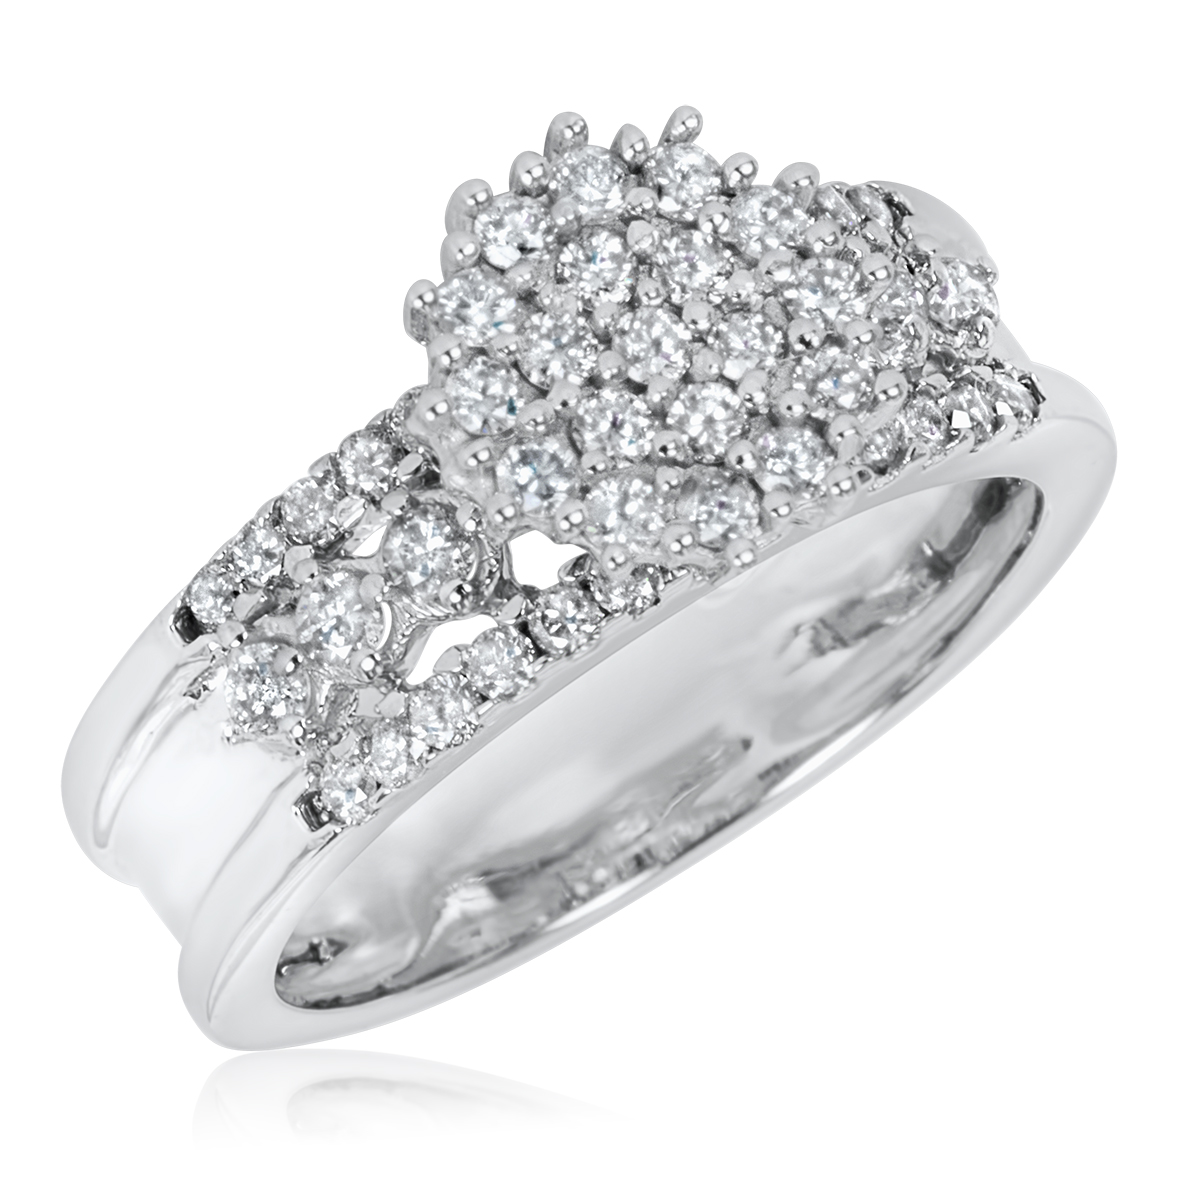 Women39;s Engagement Ring 14K White Gold  My Trio Rings  BT106W14KE